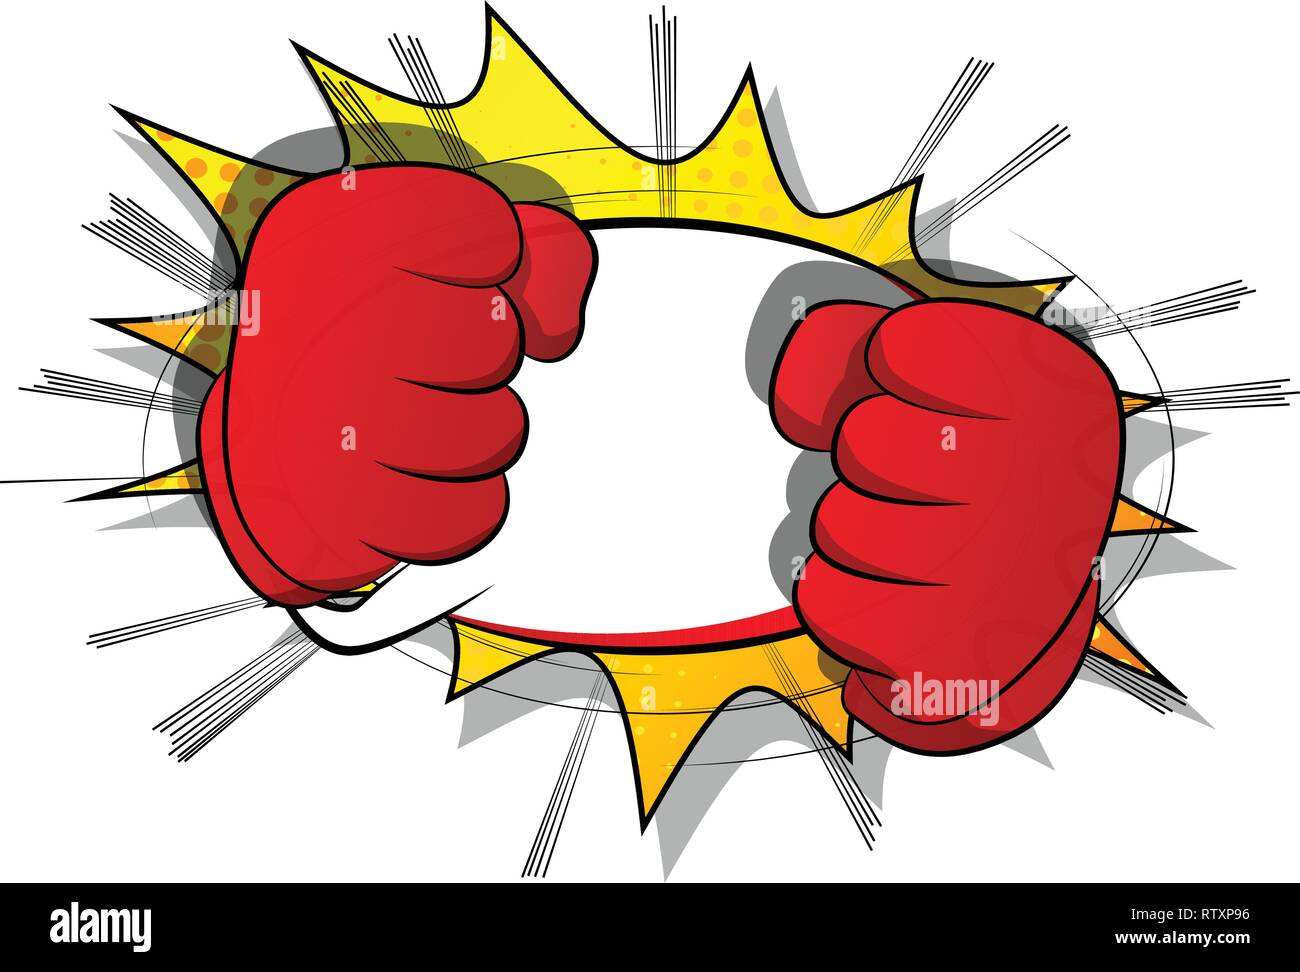 Vector Cartoon Hands Ready To Fight Illustrated Hand Sign On Comic Book Background Stock Vector Image Art Alamy